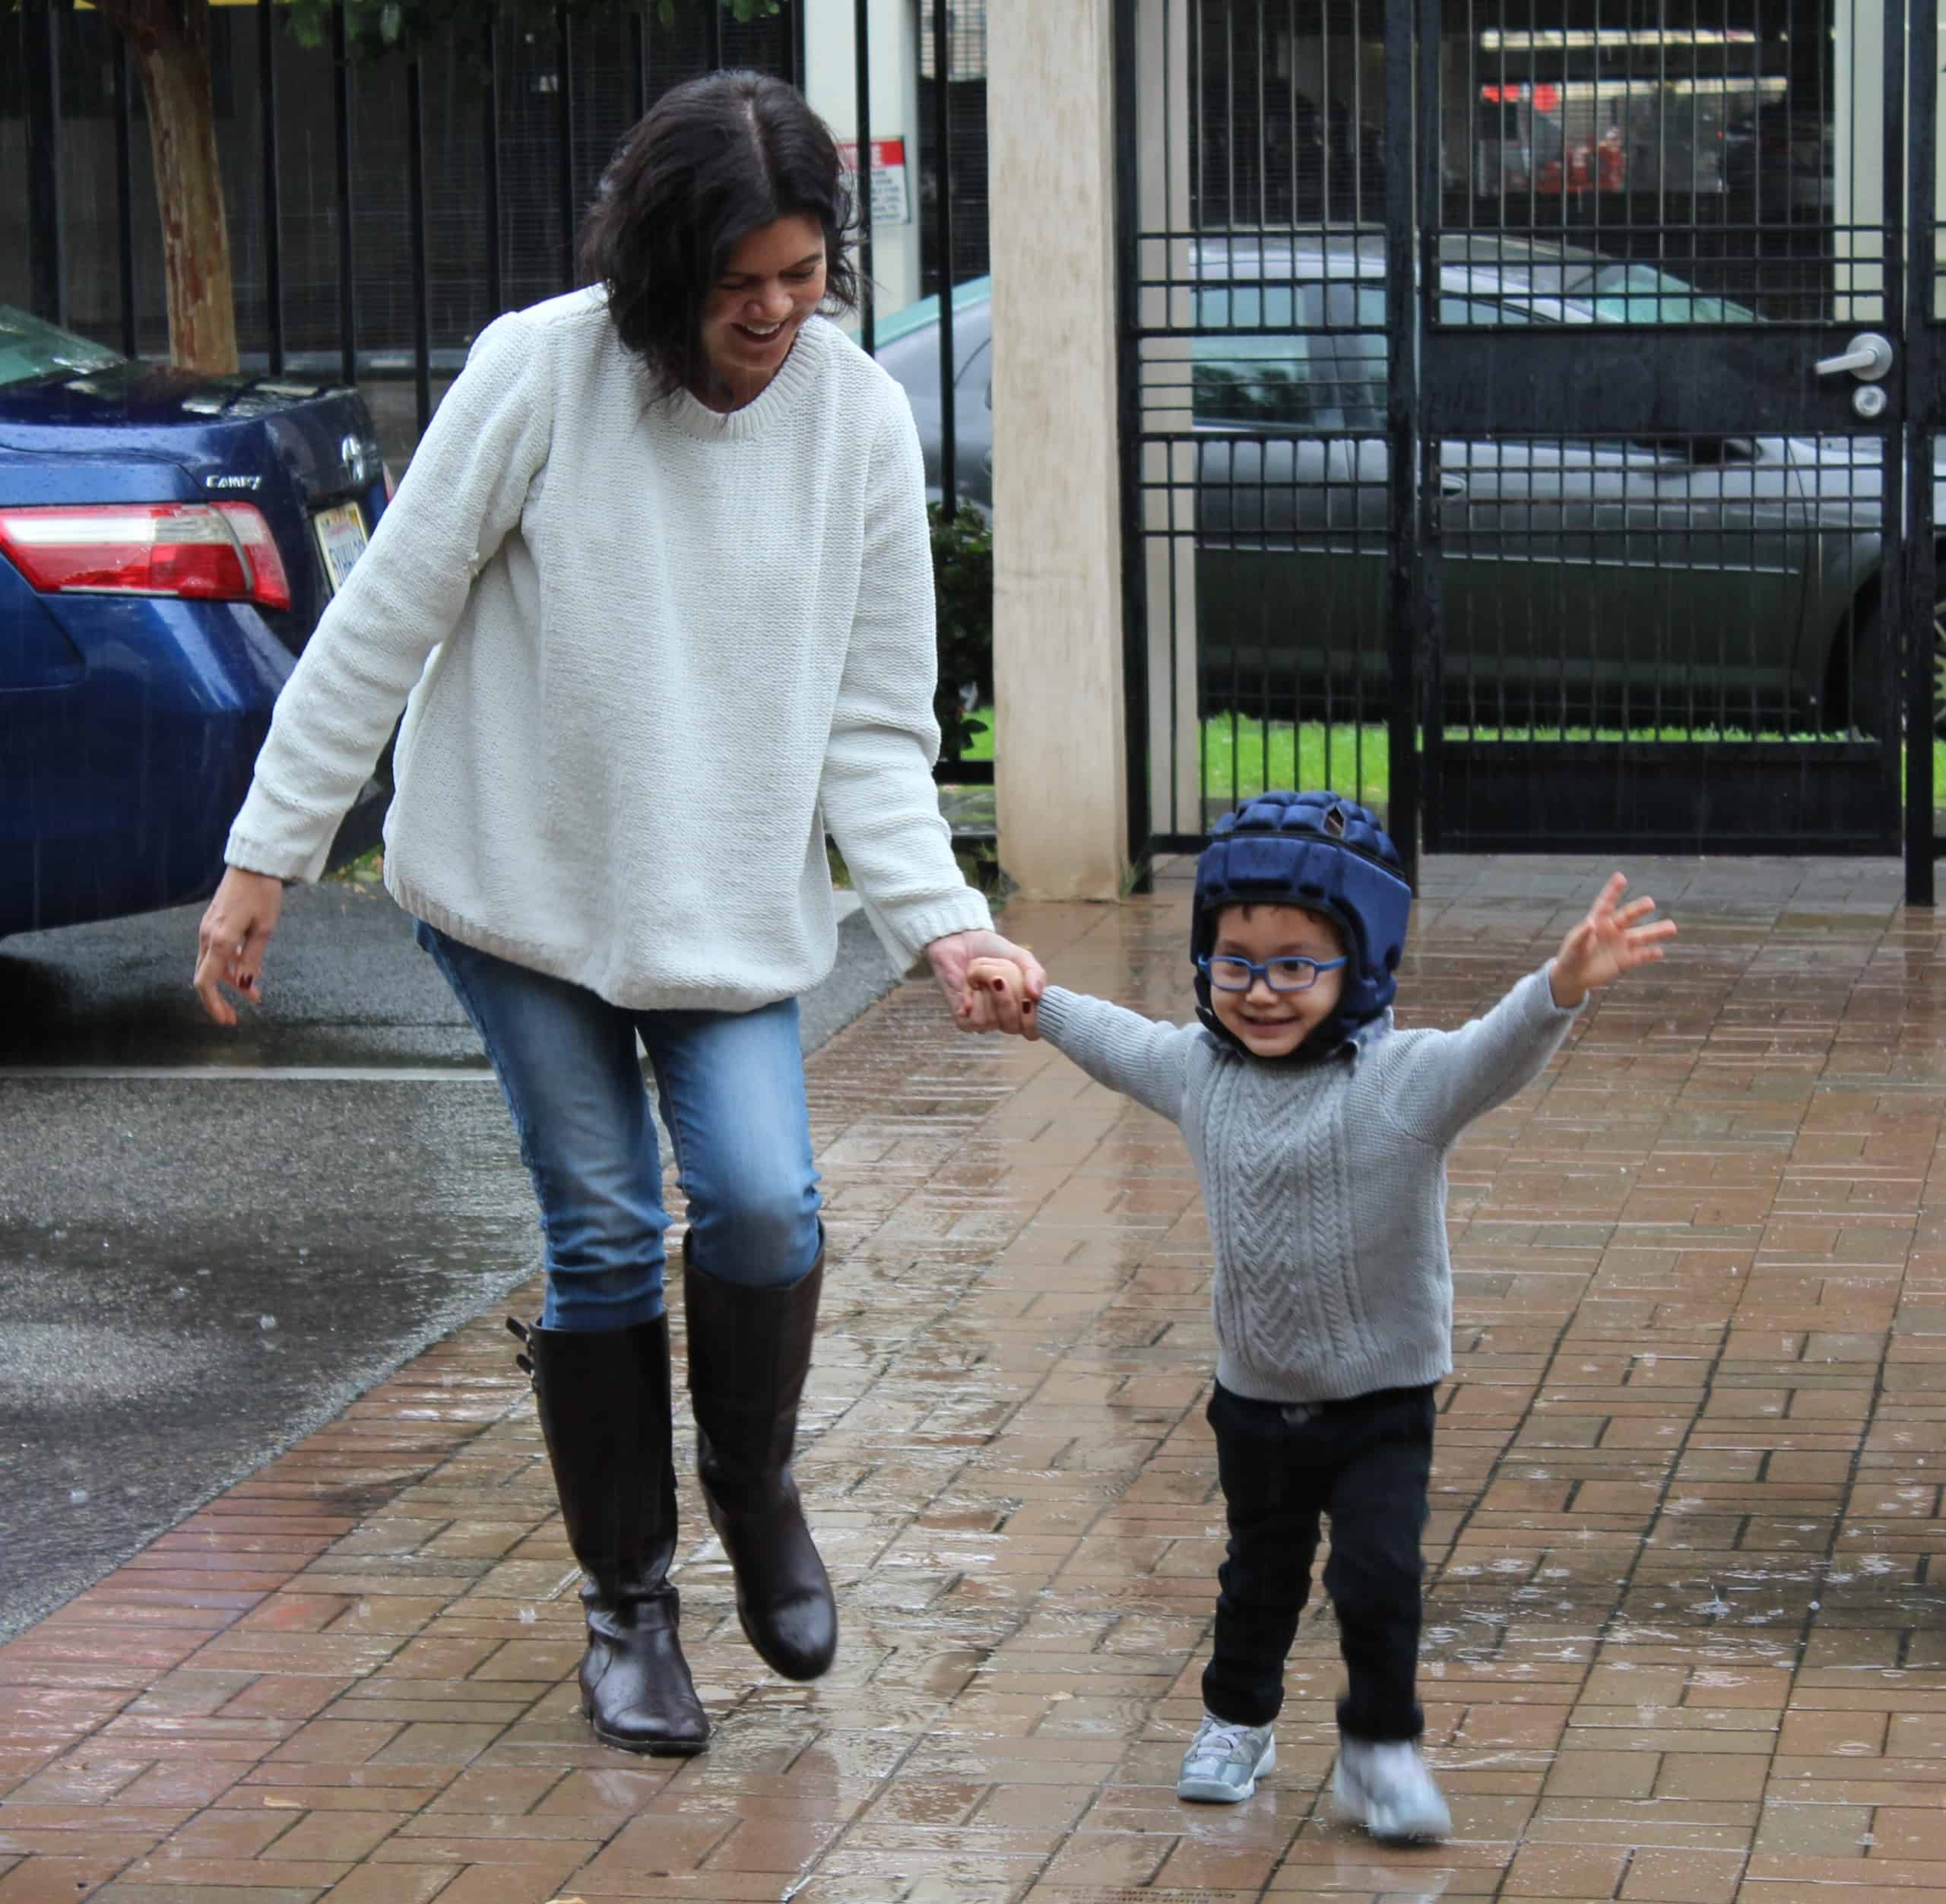 A specialist holds the hand of an excited preschool boy with glasses as they splash in puddles in the BCC parking lot